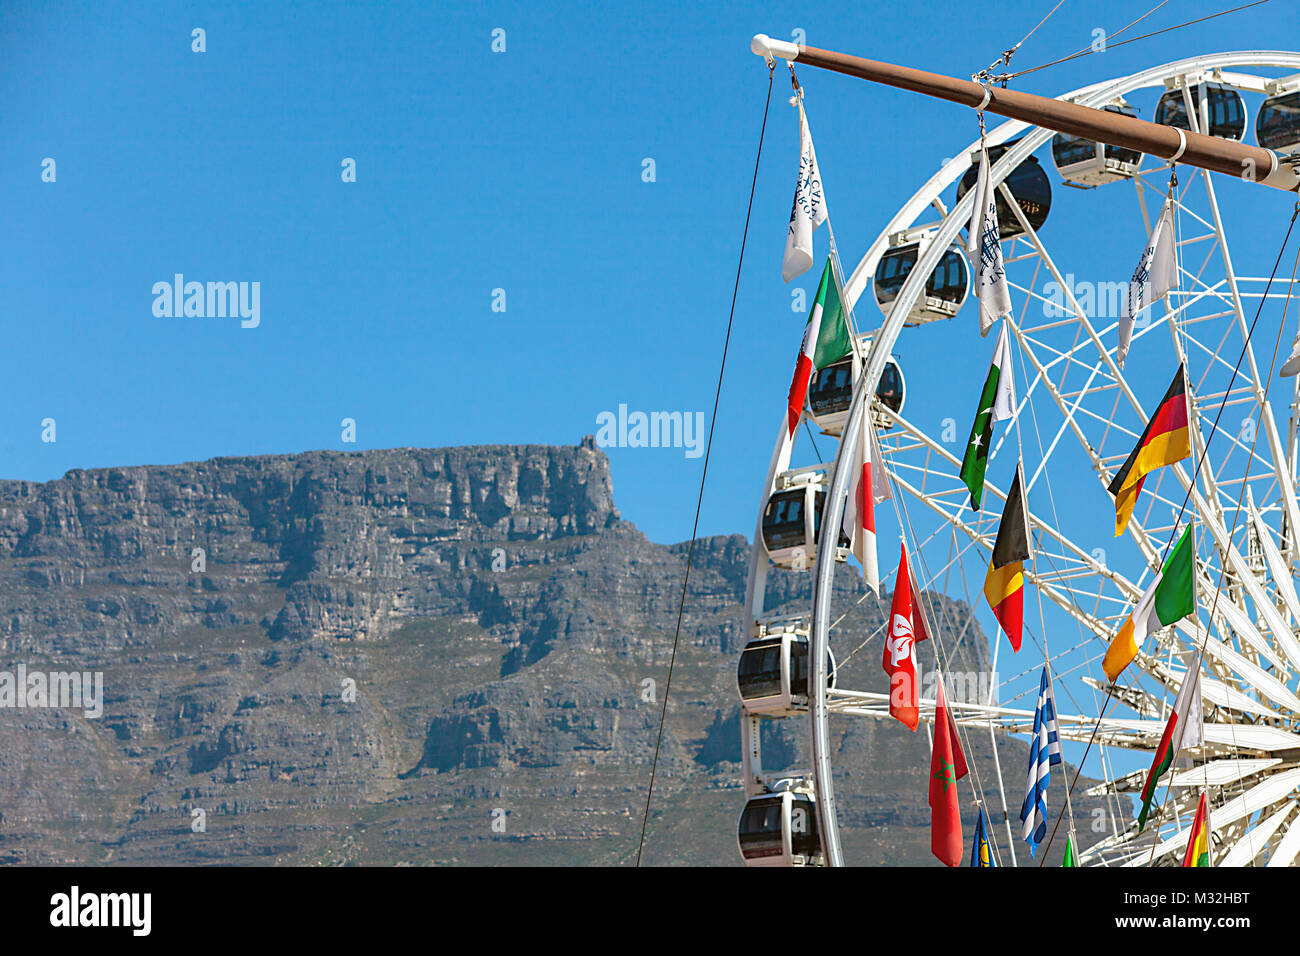 On the waterfront in Cape Town overlooking Table Mountain Stock Photo